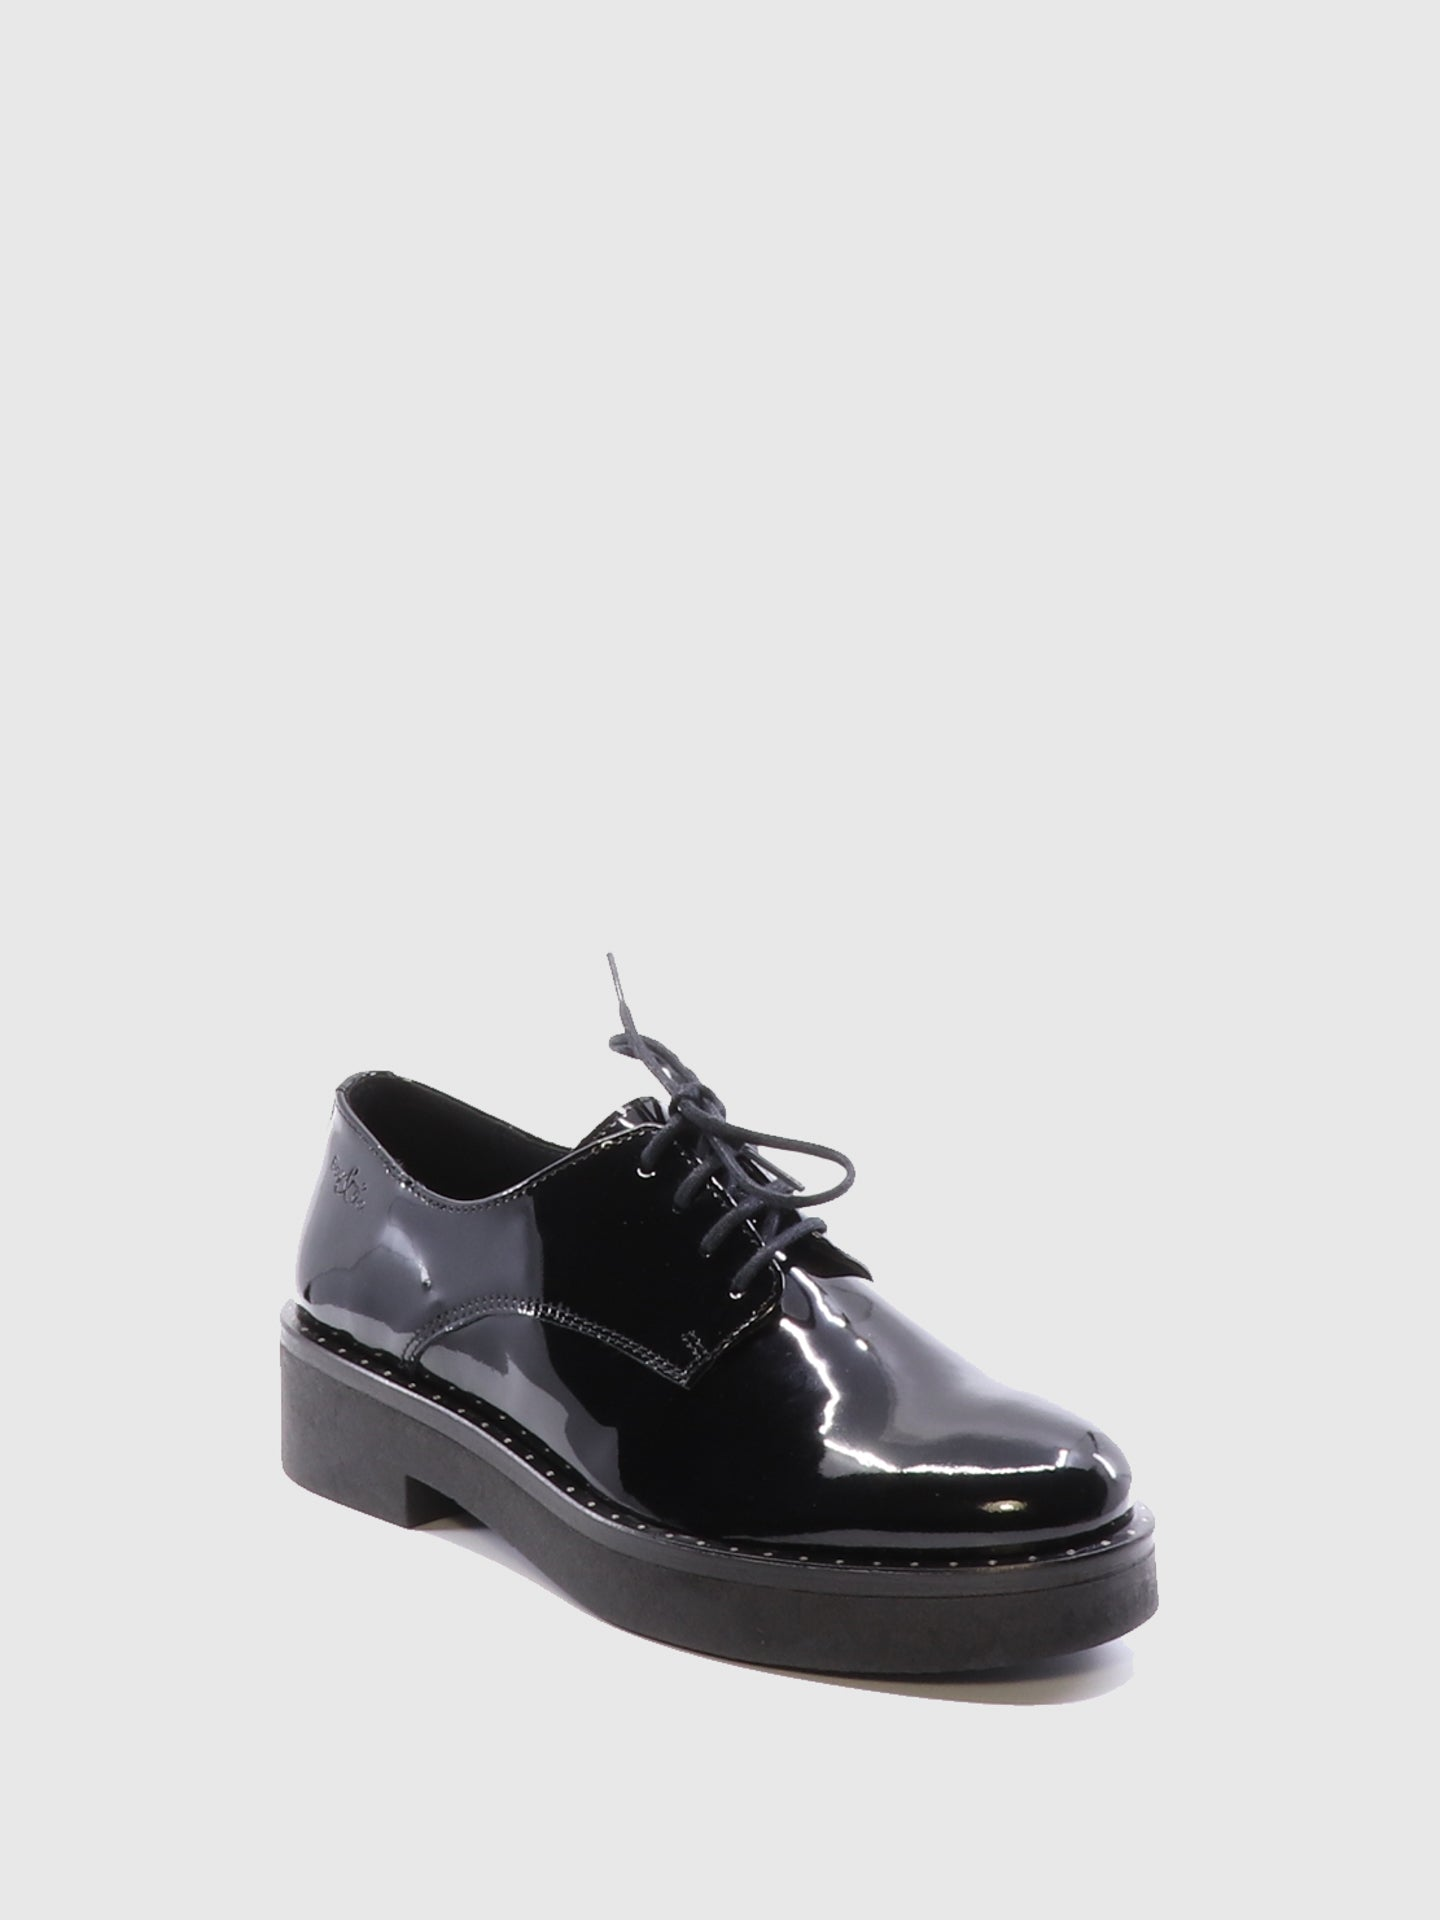 Bos&Co Black Derby Shoes